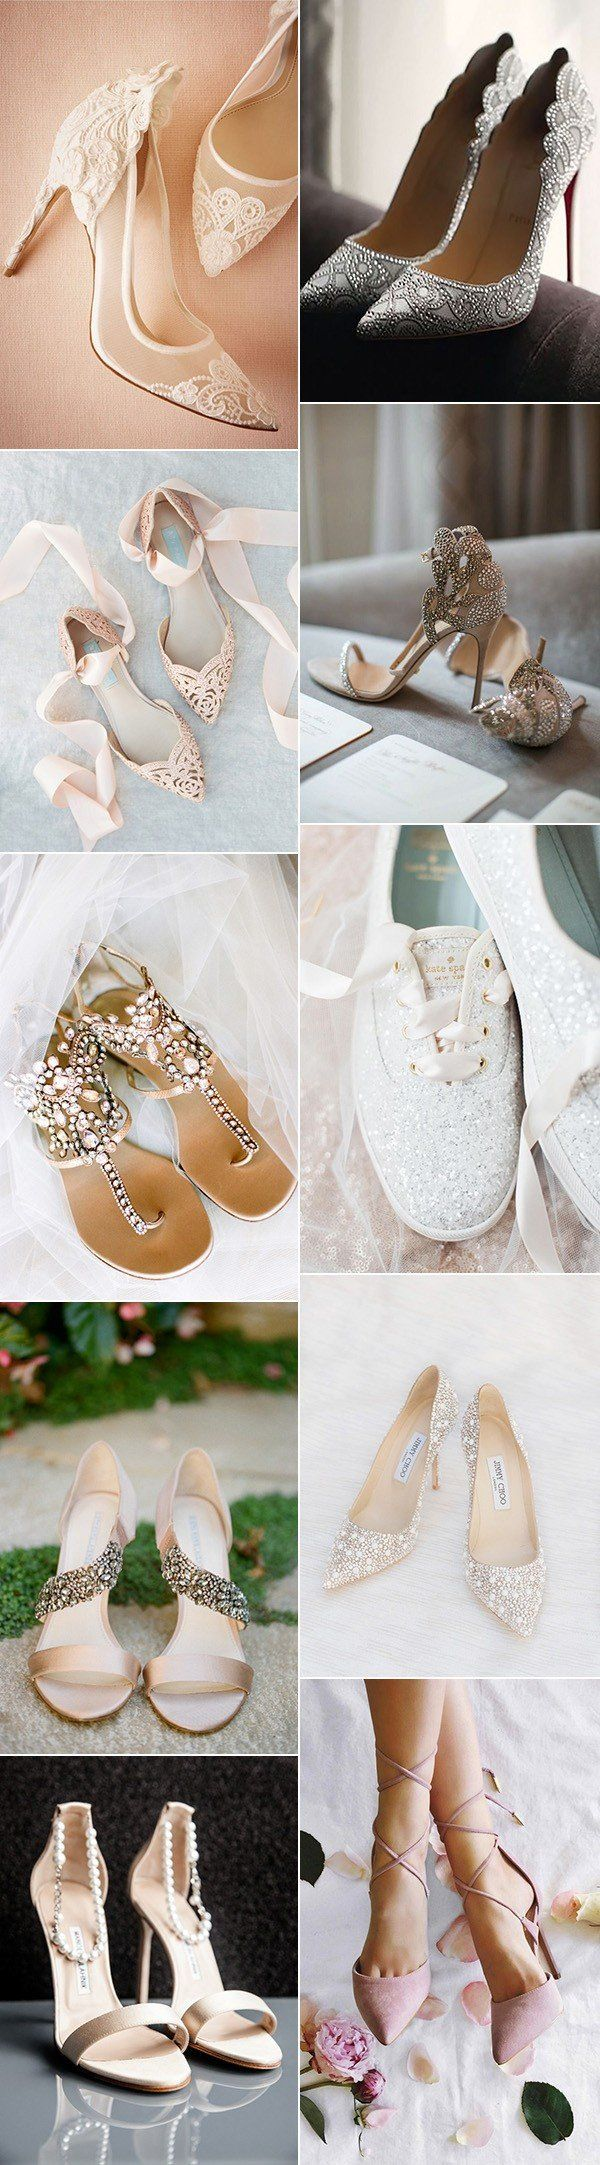 top 20 hottest bridal wedding shoes for 2017 trends